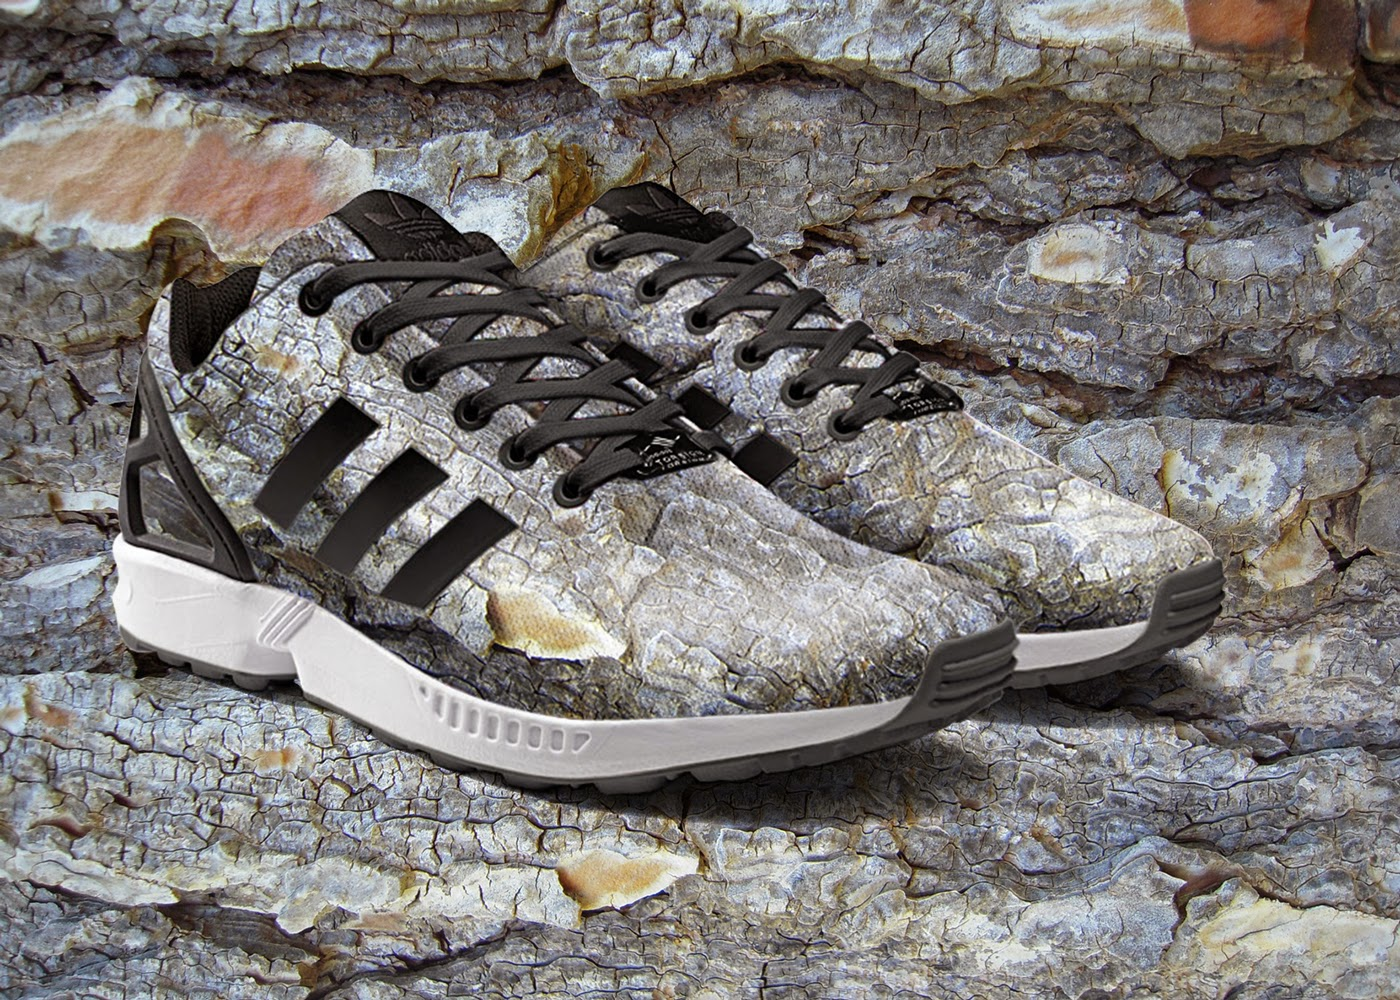 13-mi-Adidas-ZX-Flux-Shoe-App-to-Customise-your-Shoes-www-designstack-co